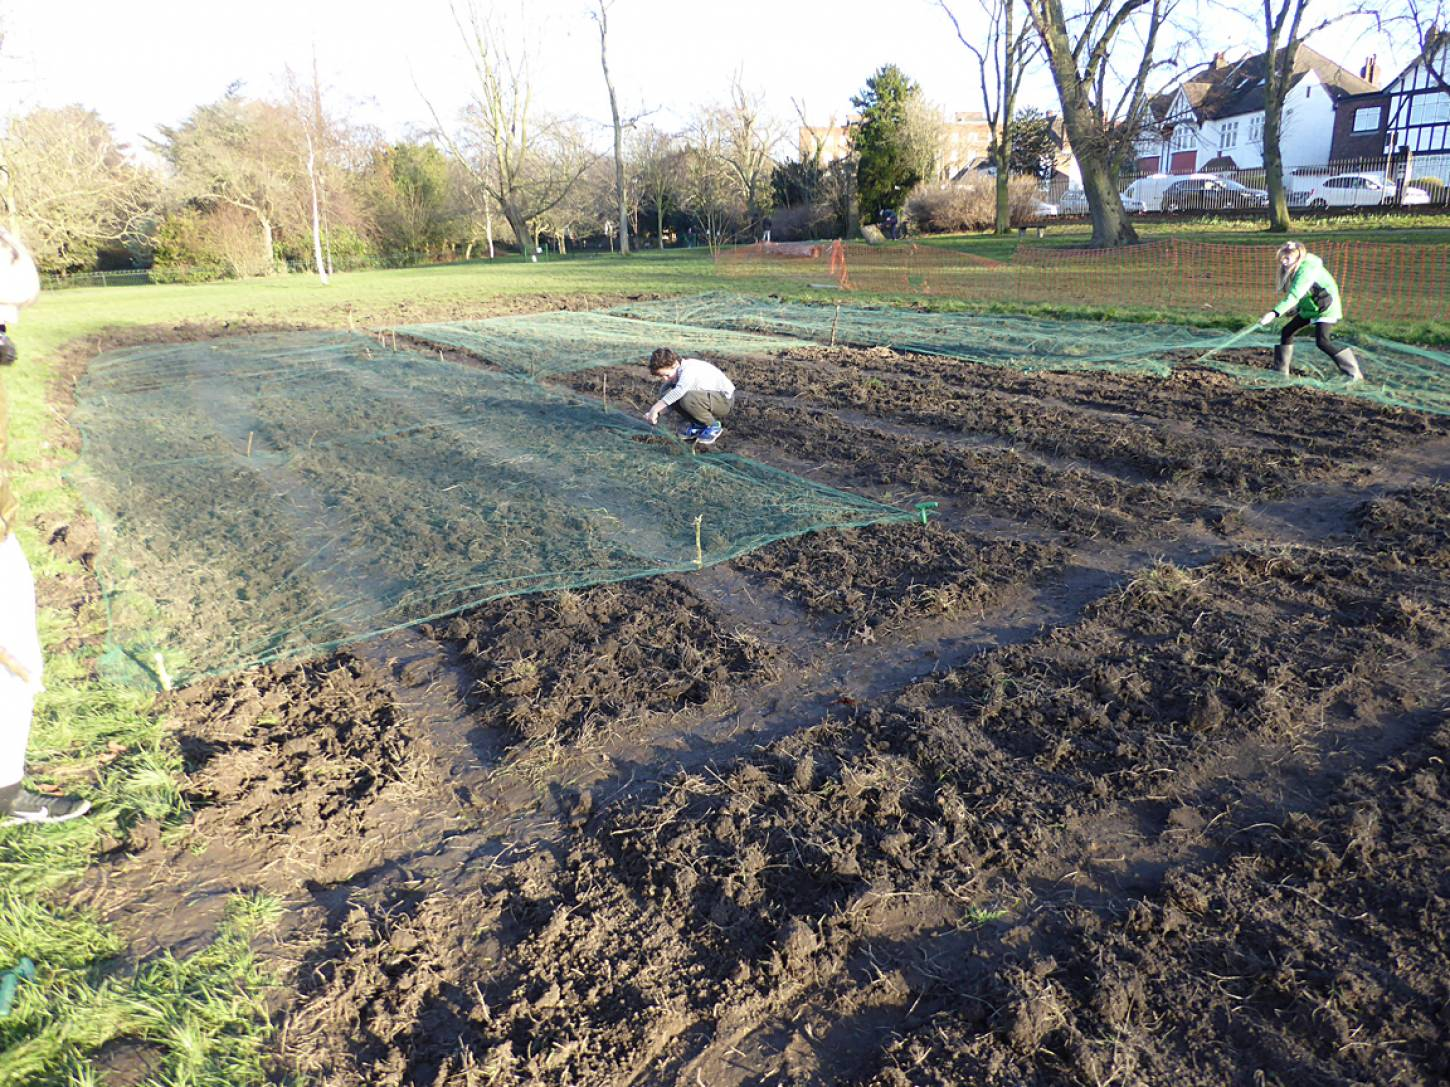 wheat goes in after harrowing on <a href='https://www.friendsofruskinpark.org.uk/' target='_blank'>Ruskin Park</a> - 4:49pm&nbsp;17<sup>th</sup>&nbsp;Feb.&nbsp;'18